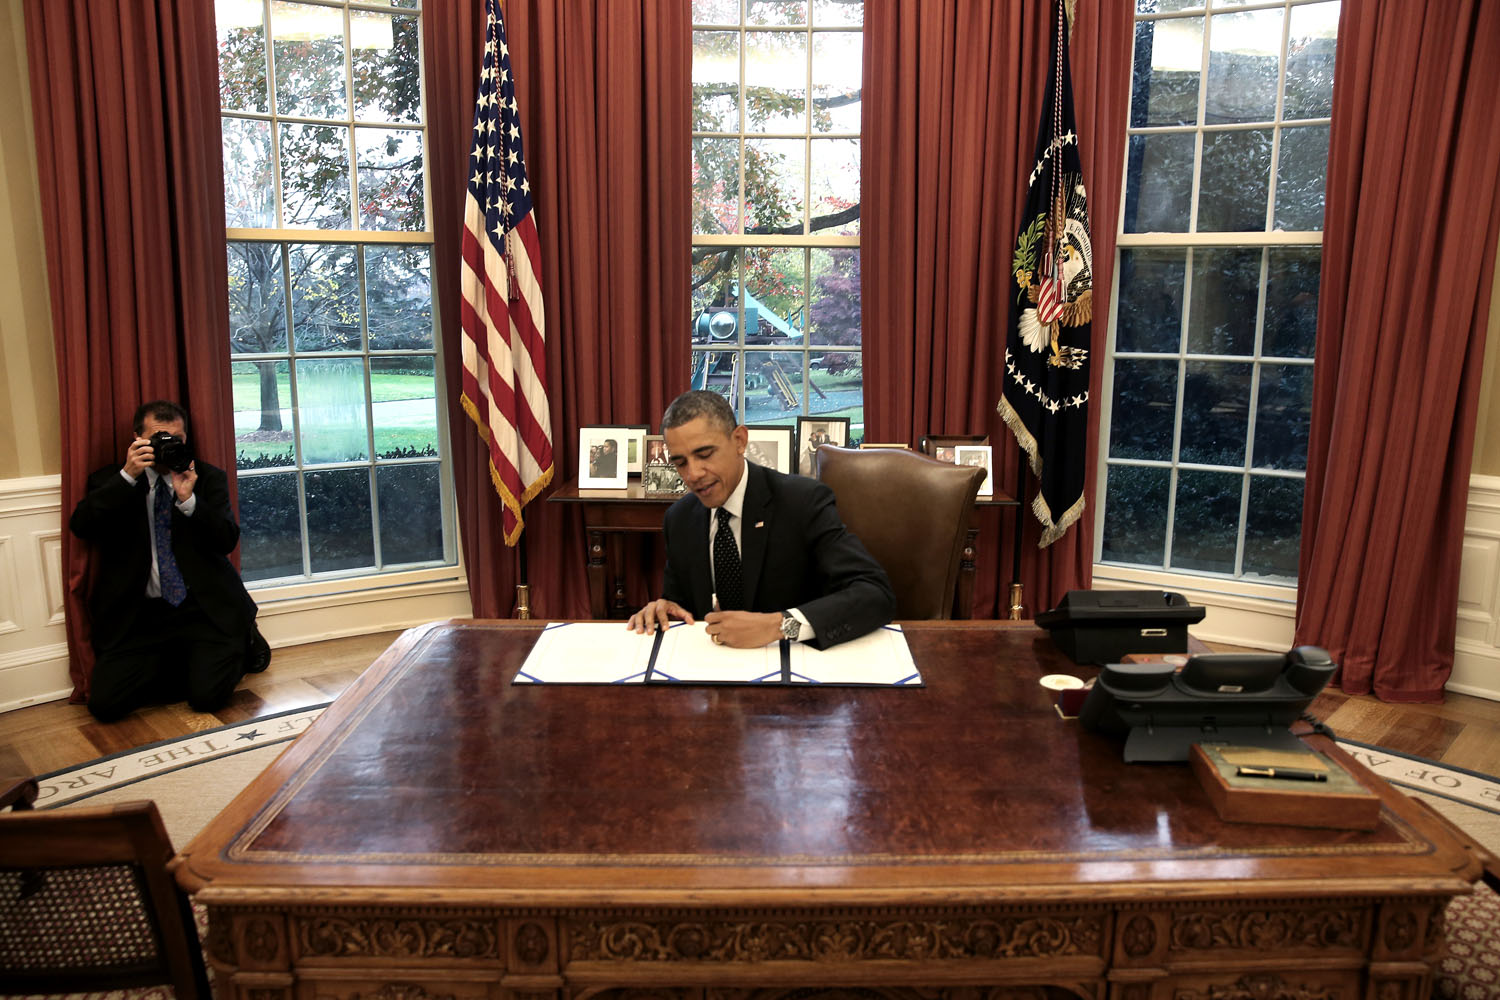 President Obama signs a bill as White House photographer Pete Souza takes pictures behind him in the Oval Office at the White House, on November 21, 2013.